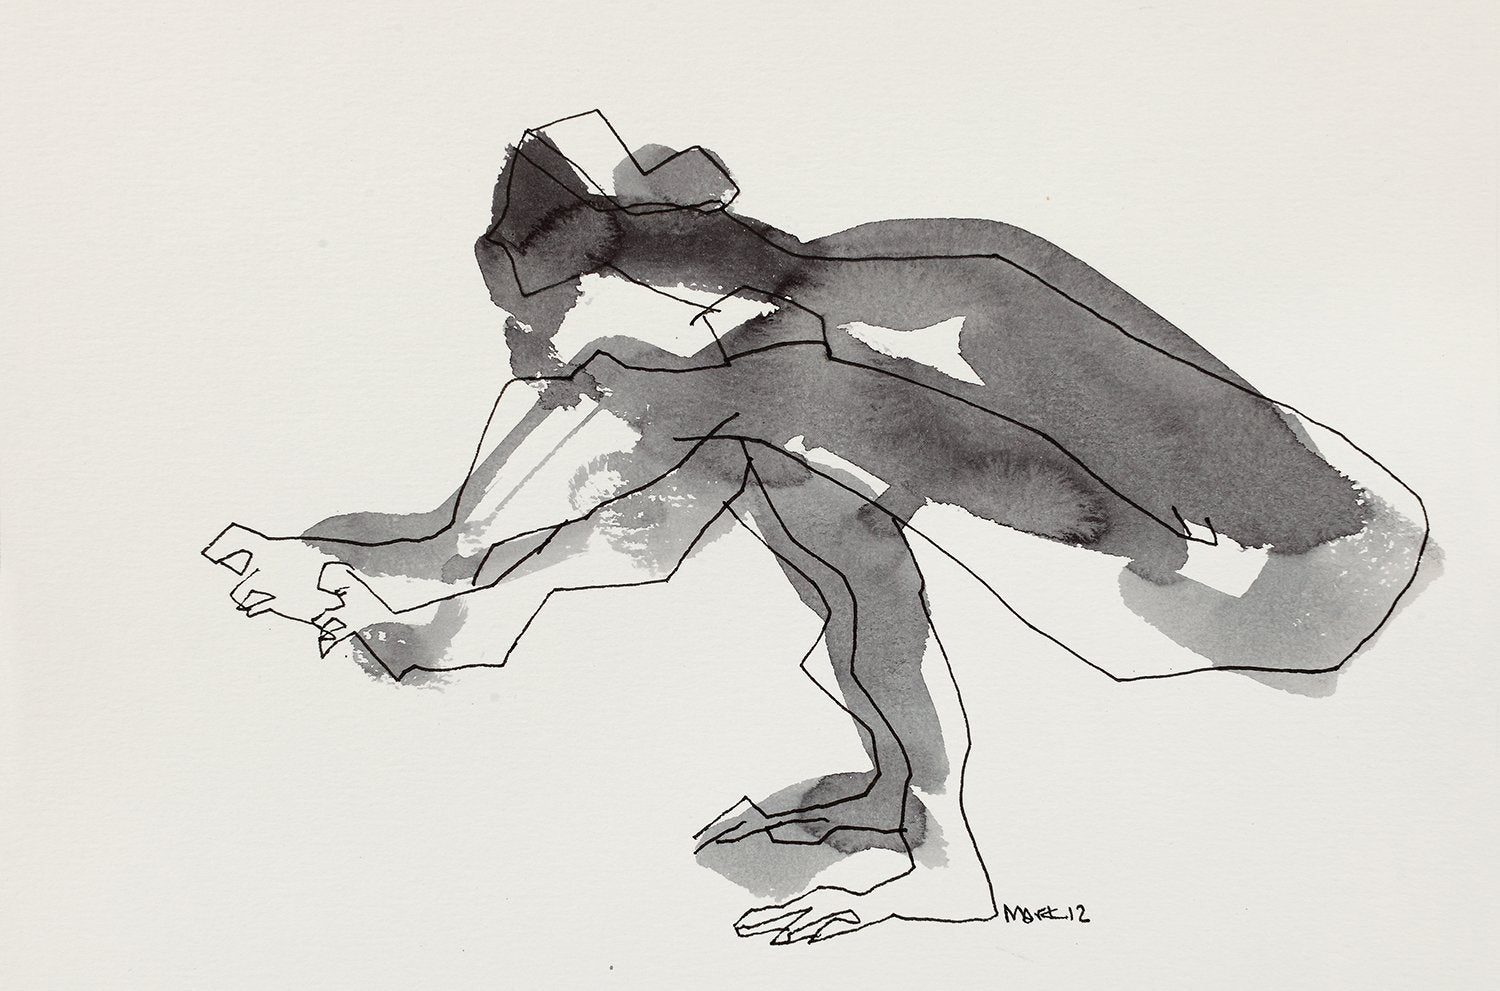 Yoga 30|S. Mark Rathinaraj- Pen and Ink on Paper, , 5.5 x 8.5 inches